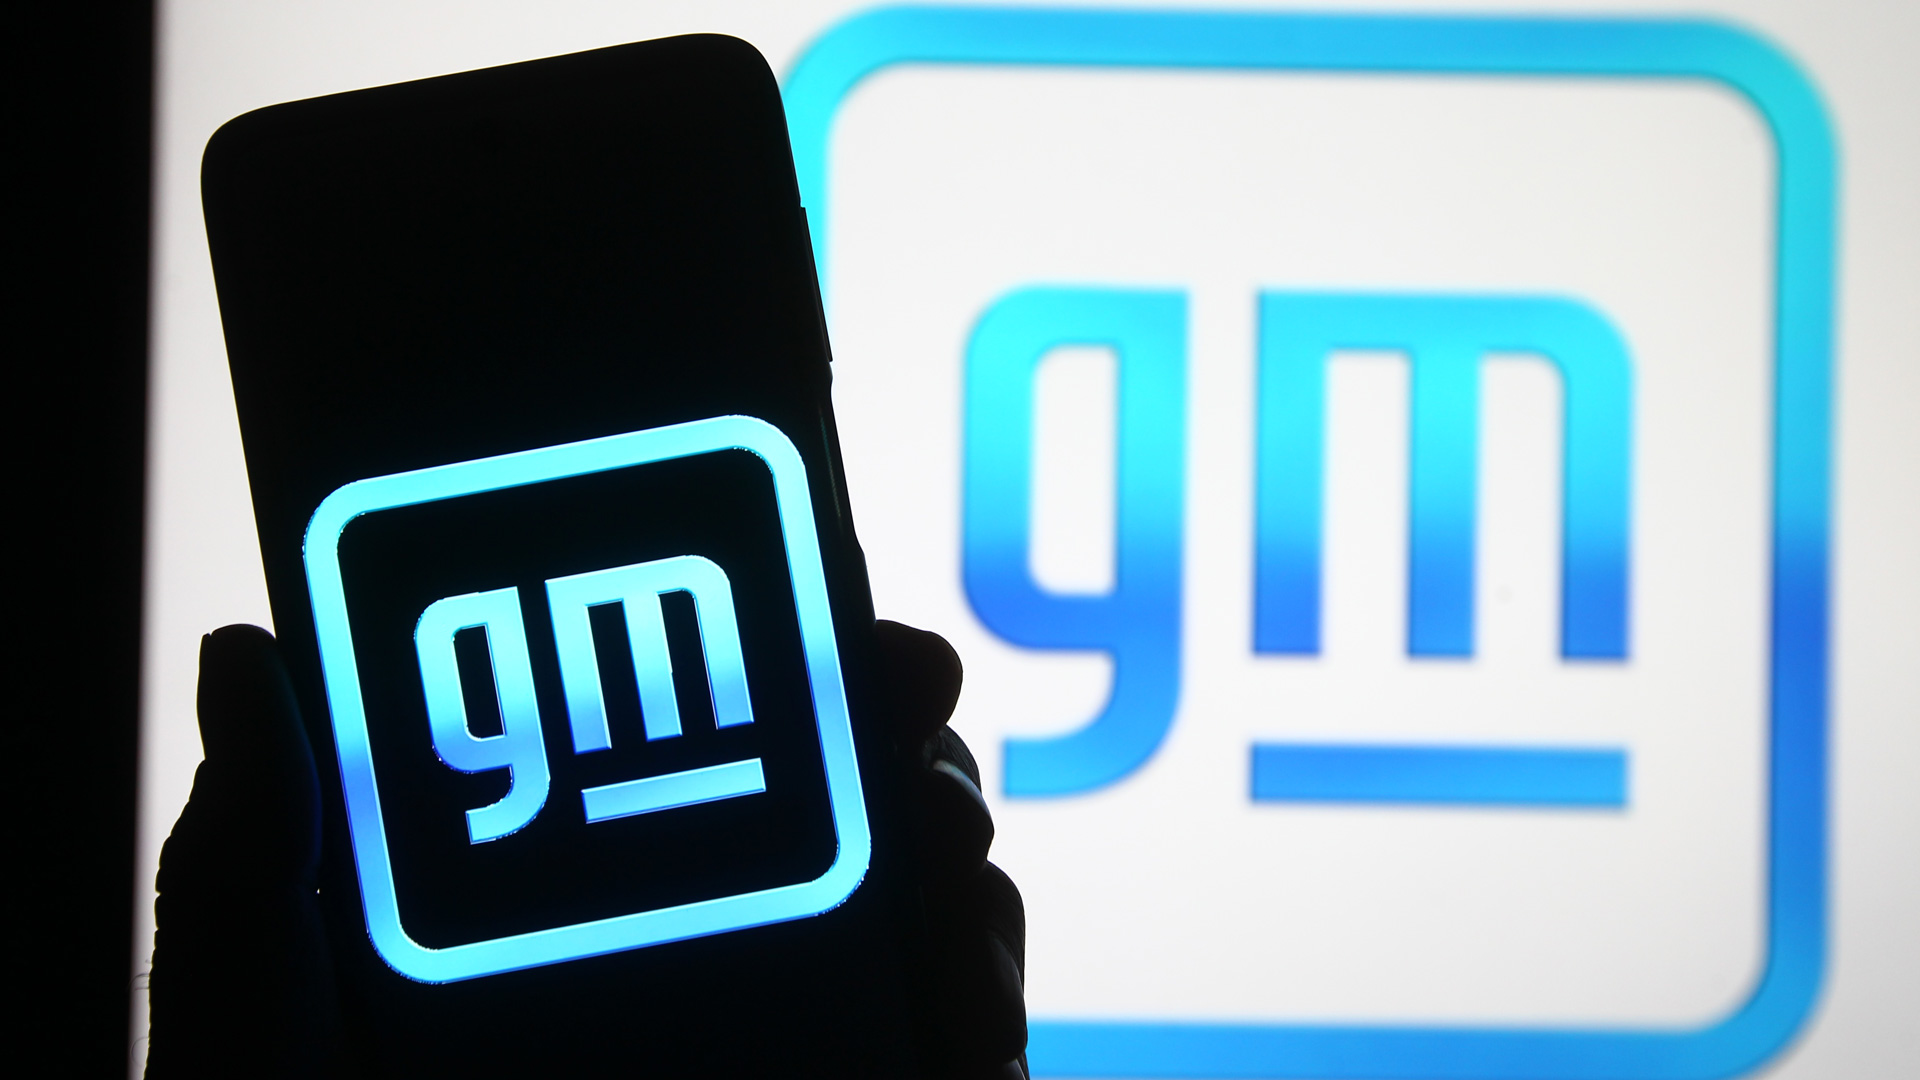 gm logo in background and gm logo on a shadowed phone screen